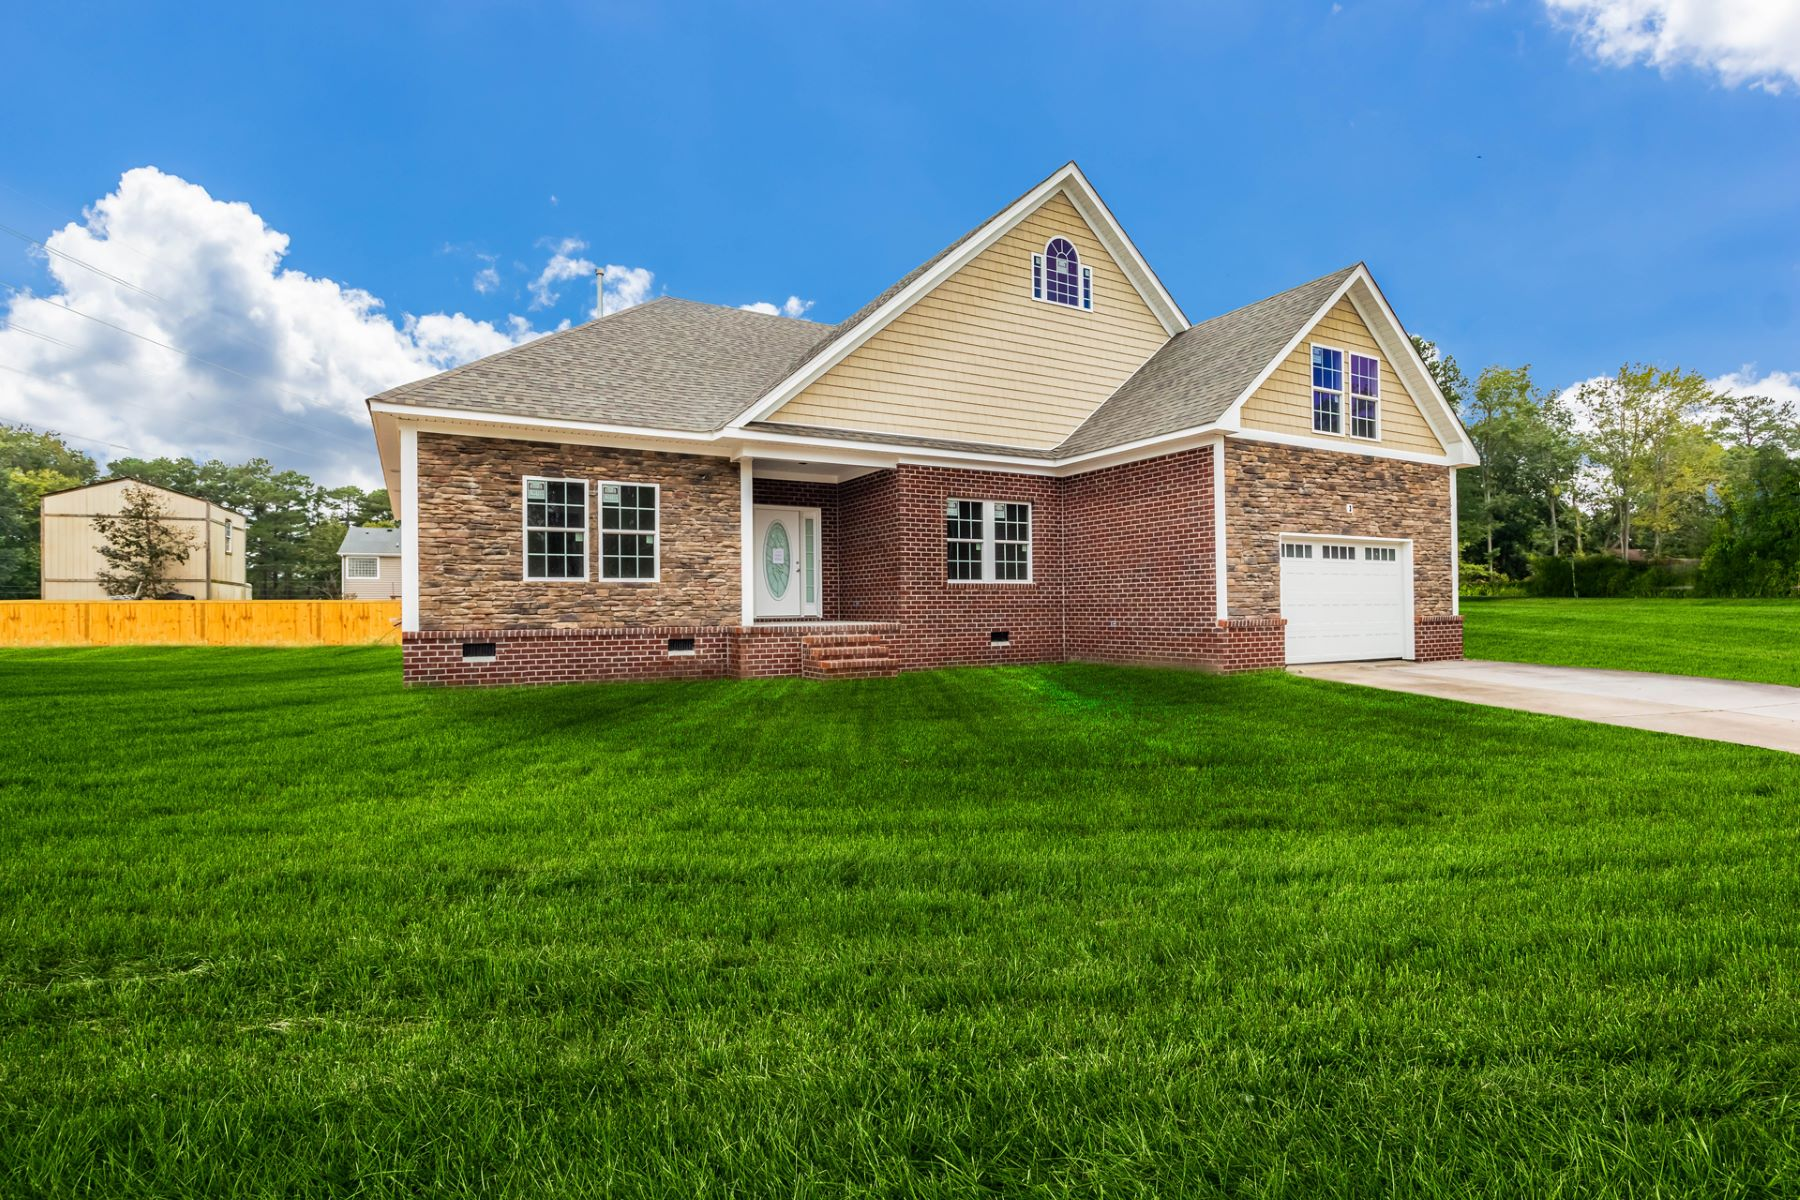 Single Family Homes for Active at Drum Creek Farms 2411 Mandolin Ct Chesapeake, Virginia 23321 United States